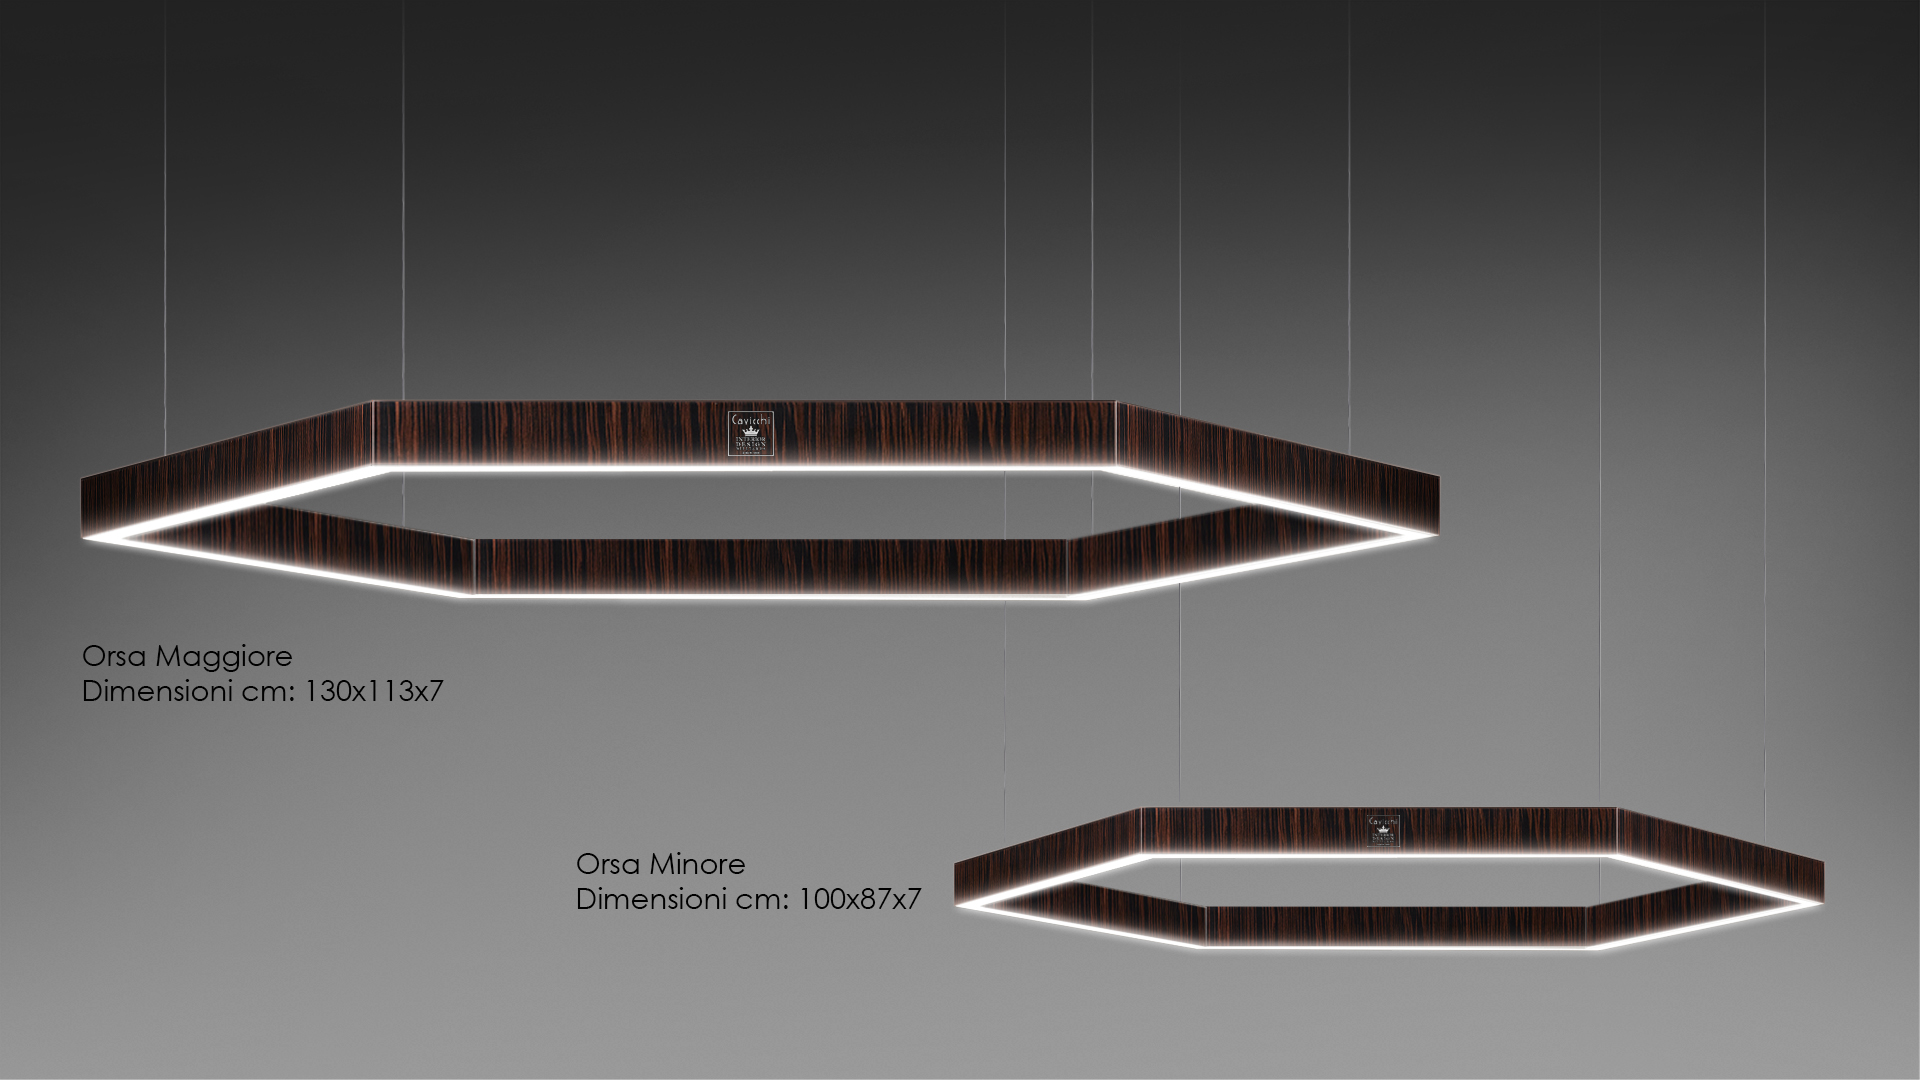 Orsa Maggiore - Orsa Minore Lamp lacquered and precious woods 2